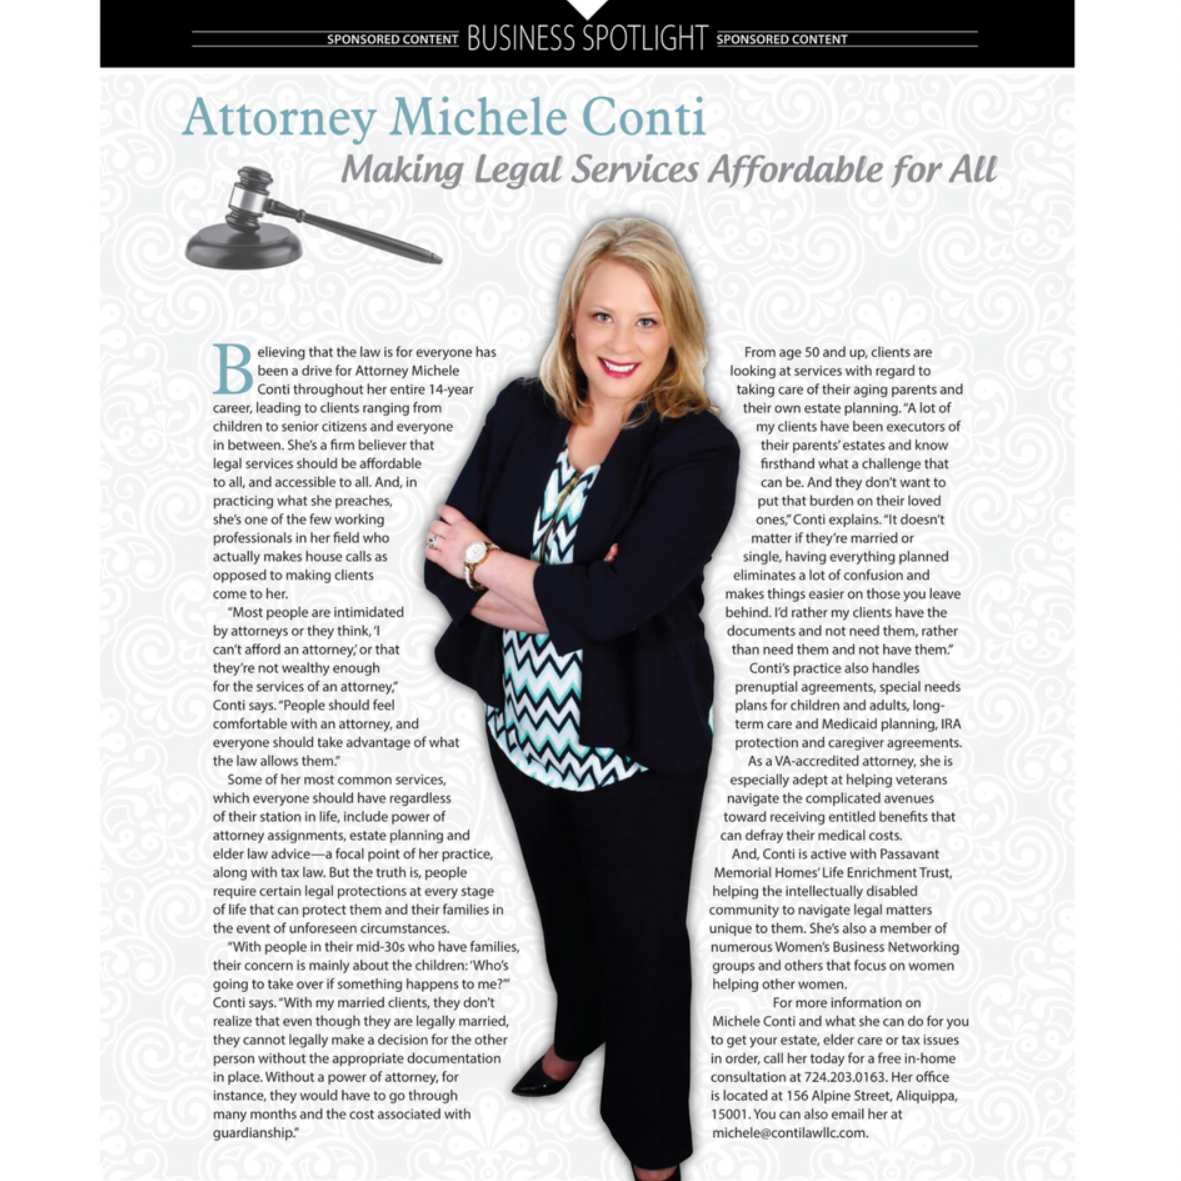 "Digital Ad & Photography  /       Conti Law, Inc.     Their Story : Attorney Michele Conti makes house calls. Why? Most people are intimidated by attorneys or think they can't afford one. She explains, ""People should feel comfortable with an attorney, and everyone should be able to take advantage of what the law allows them."" Our photography and article layout needed to reflect this message clearly."